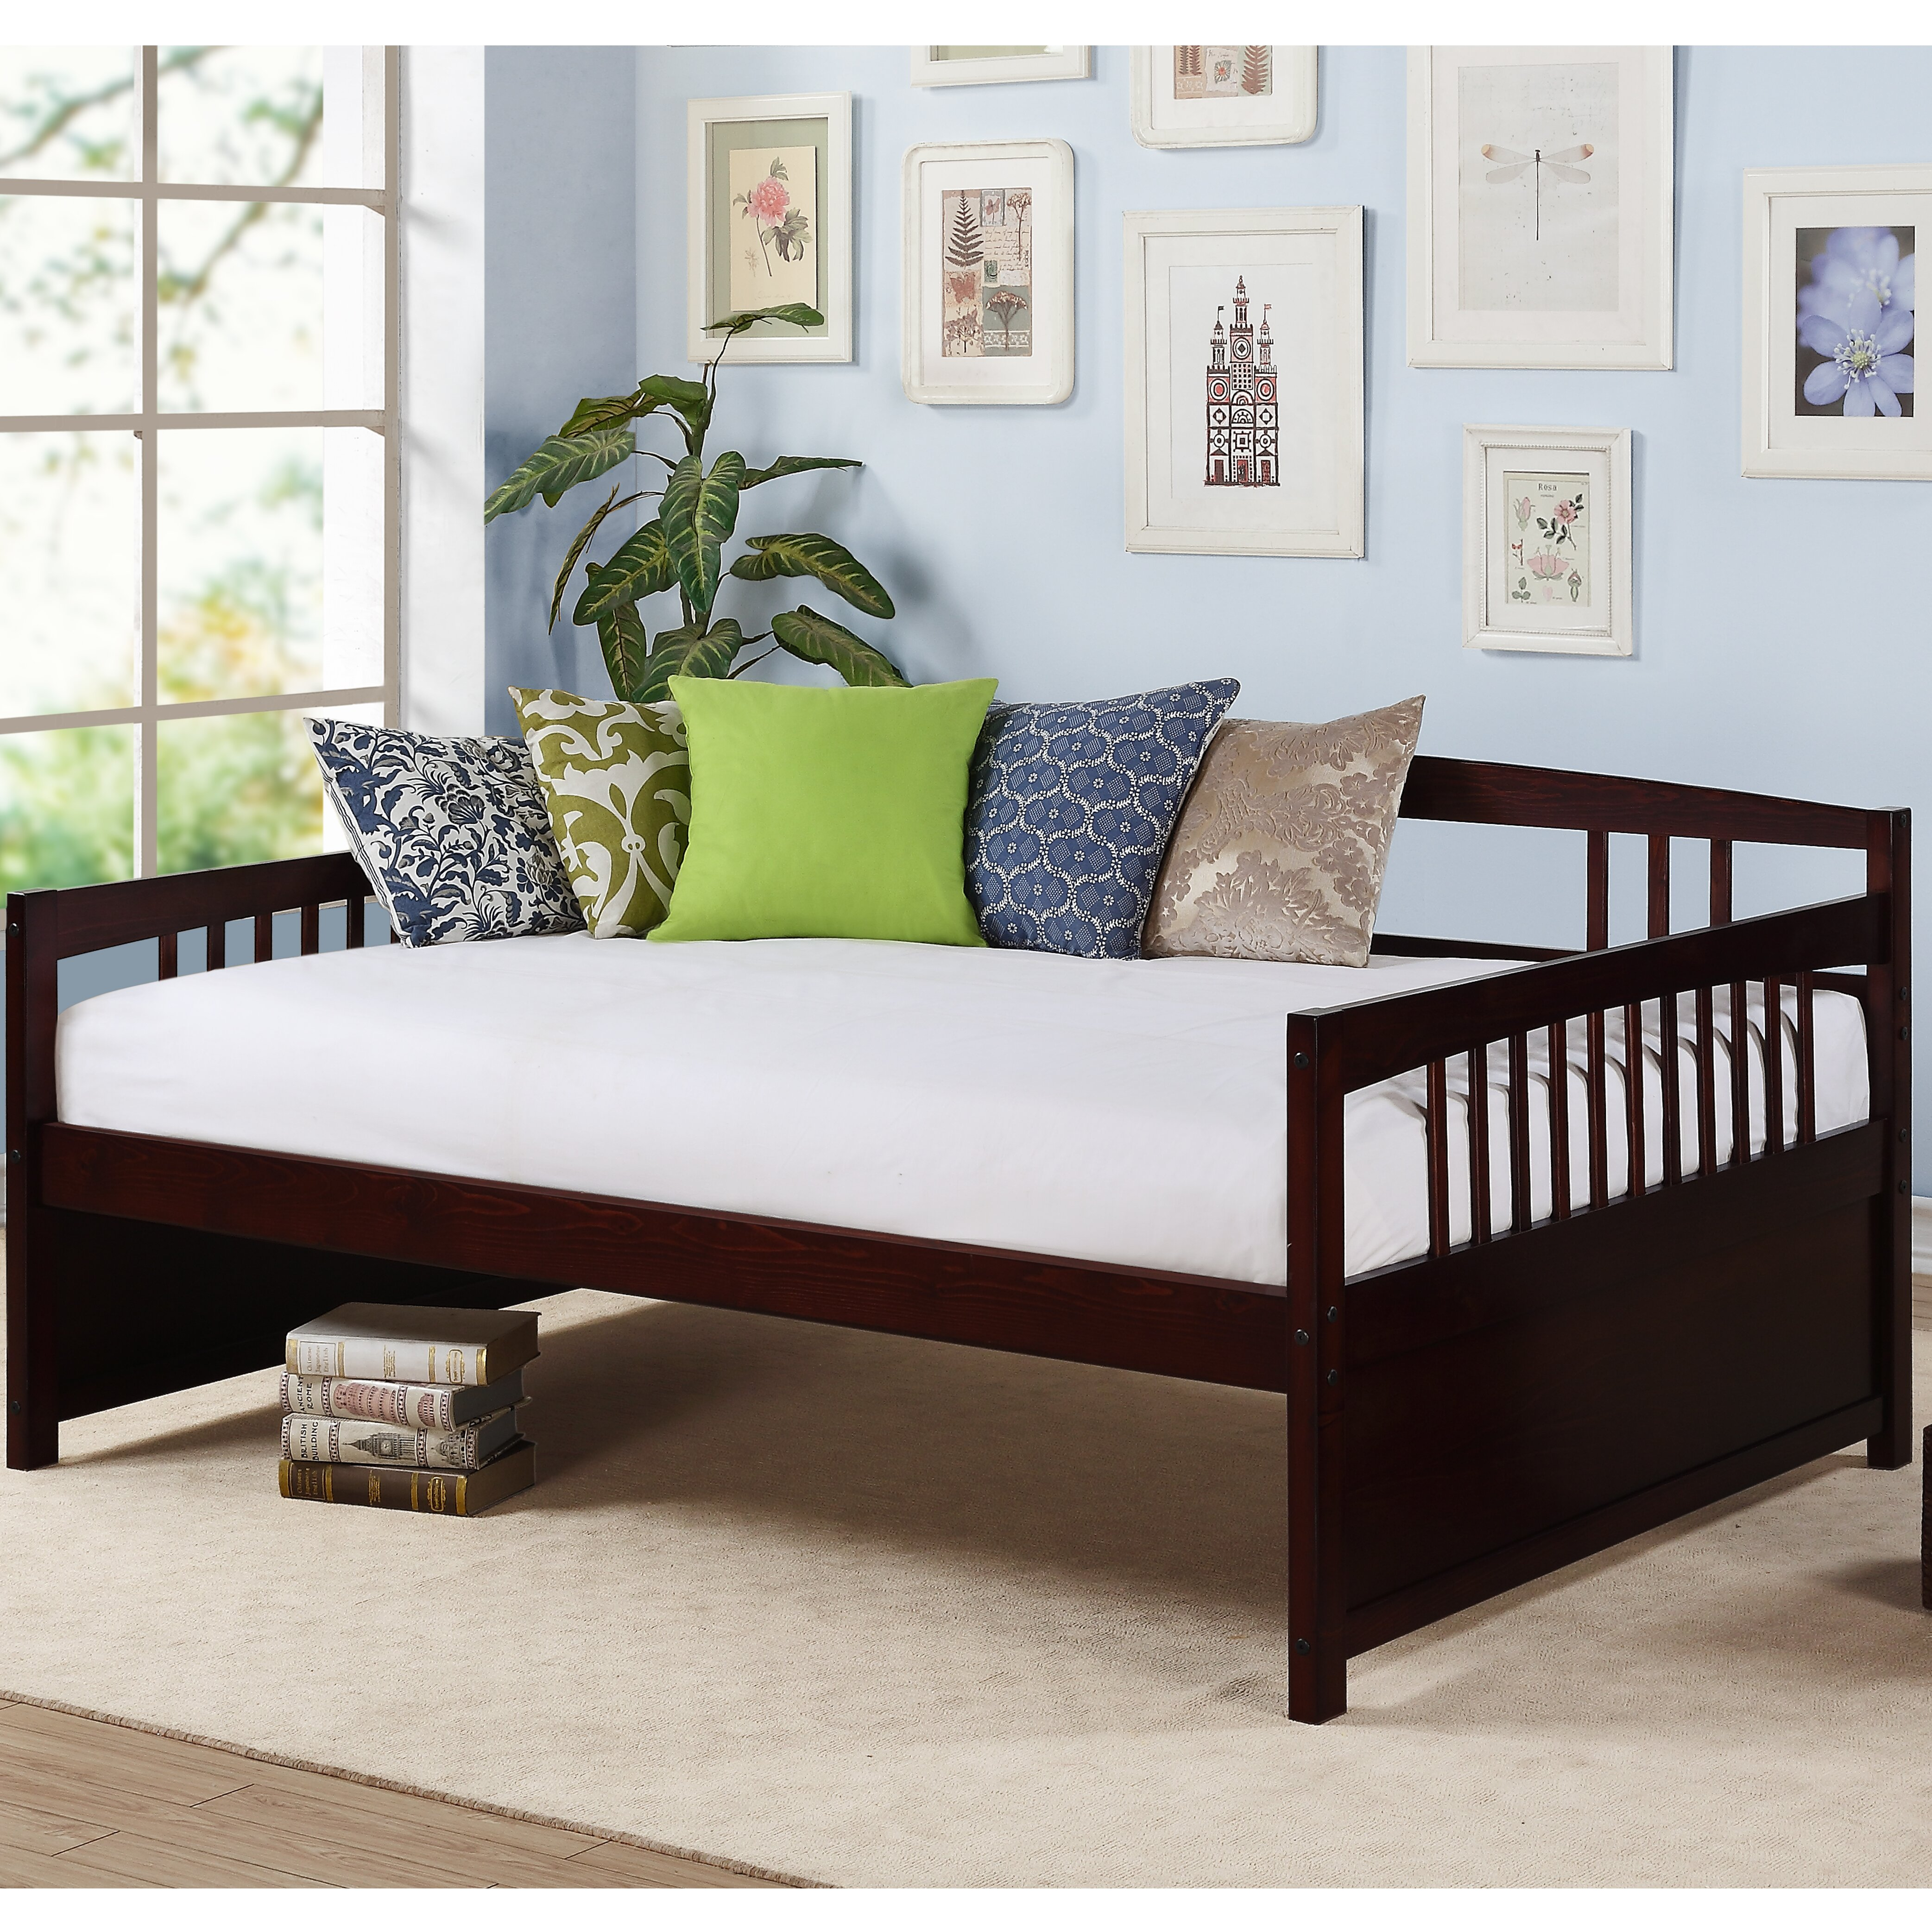 - Twin Daybed Frames Wqs6n5d8. Twin Daybed Frame Make A Single Bed